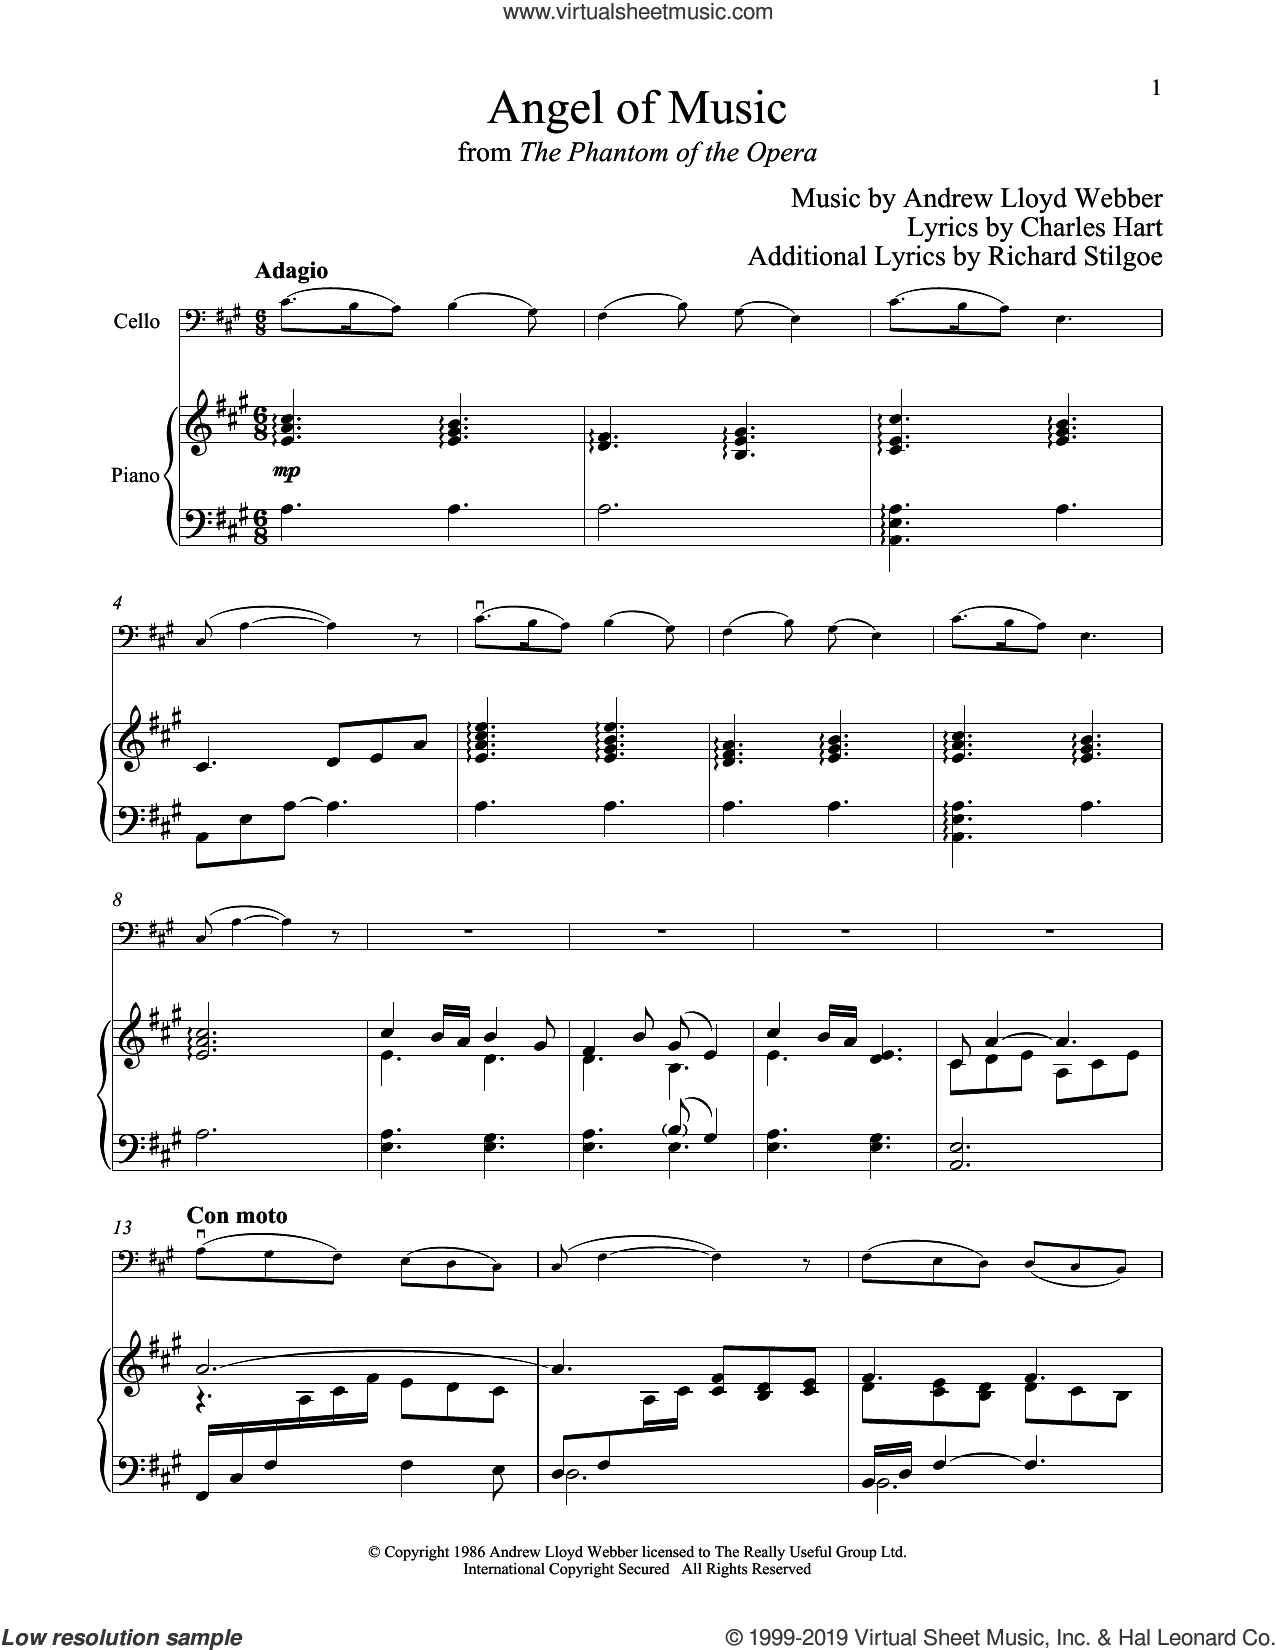 Angel Of Music (from The Phantom of The Opera) sheet music for cello and piano by Andrew Lloyd Webber, Charles Hart and Richard Stilgoe, intermediate skill level